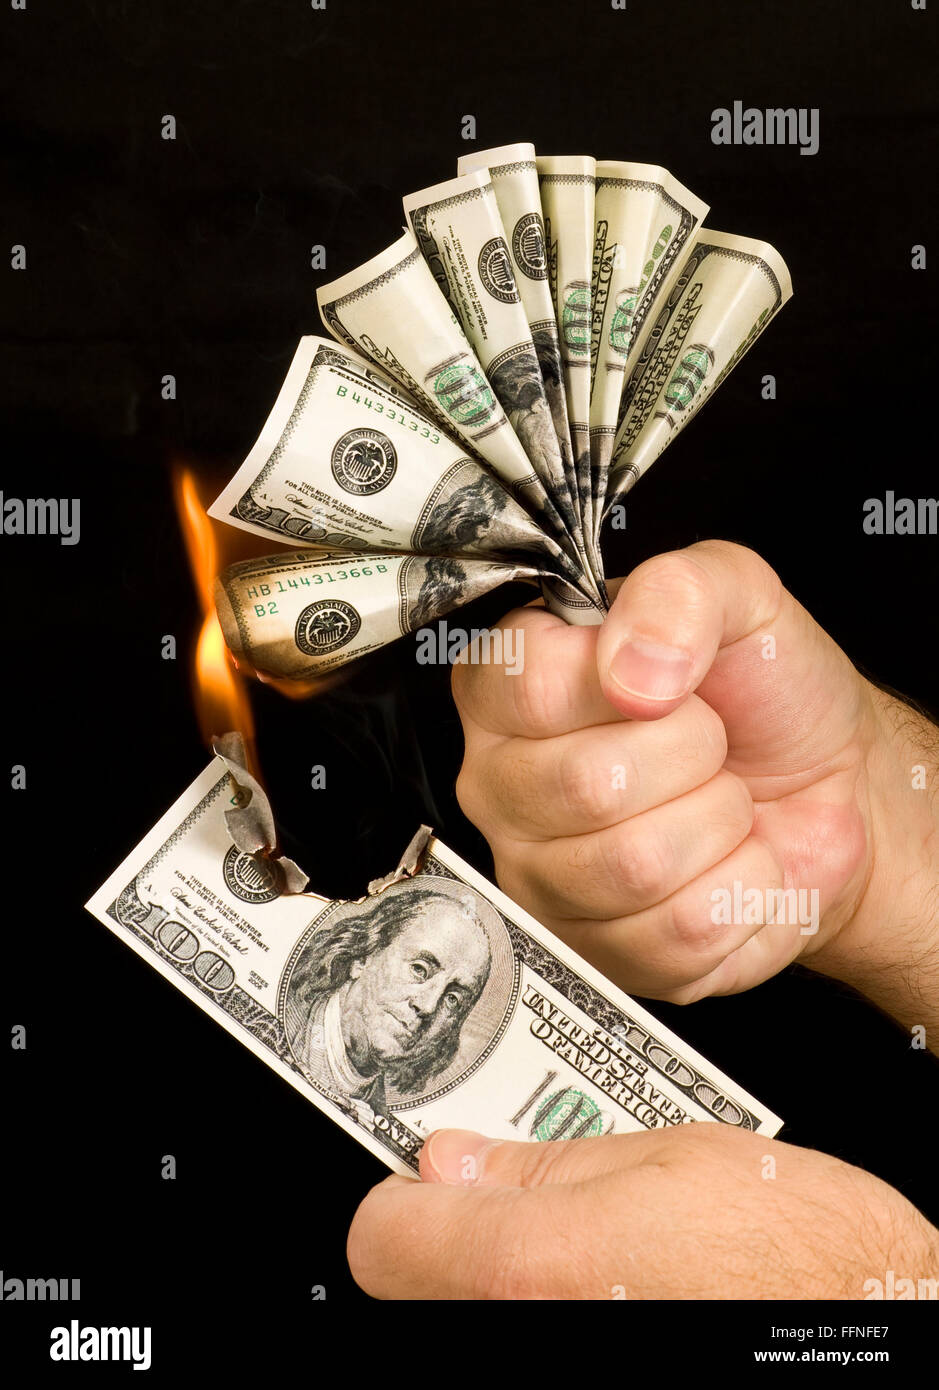 Money to Burn.  A man uses a one hundred dollar bill to set fire to the hand full of one hundred dollar bills in - Stock Image